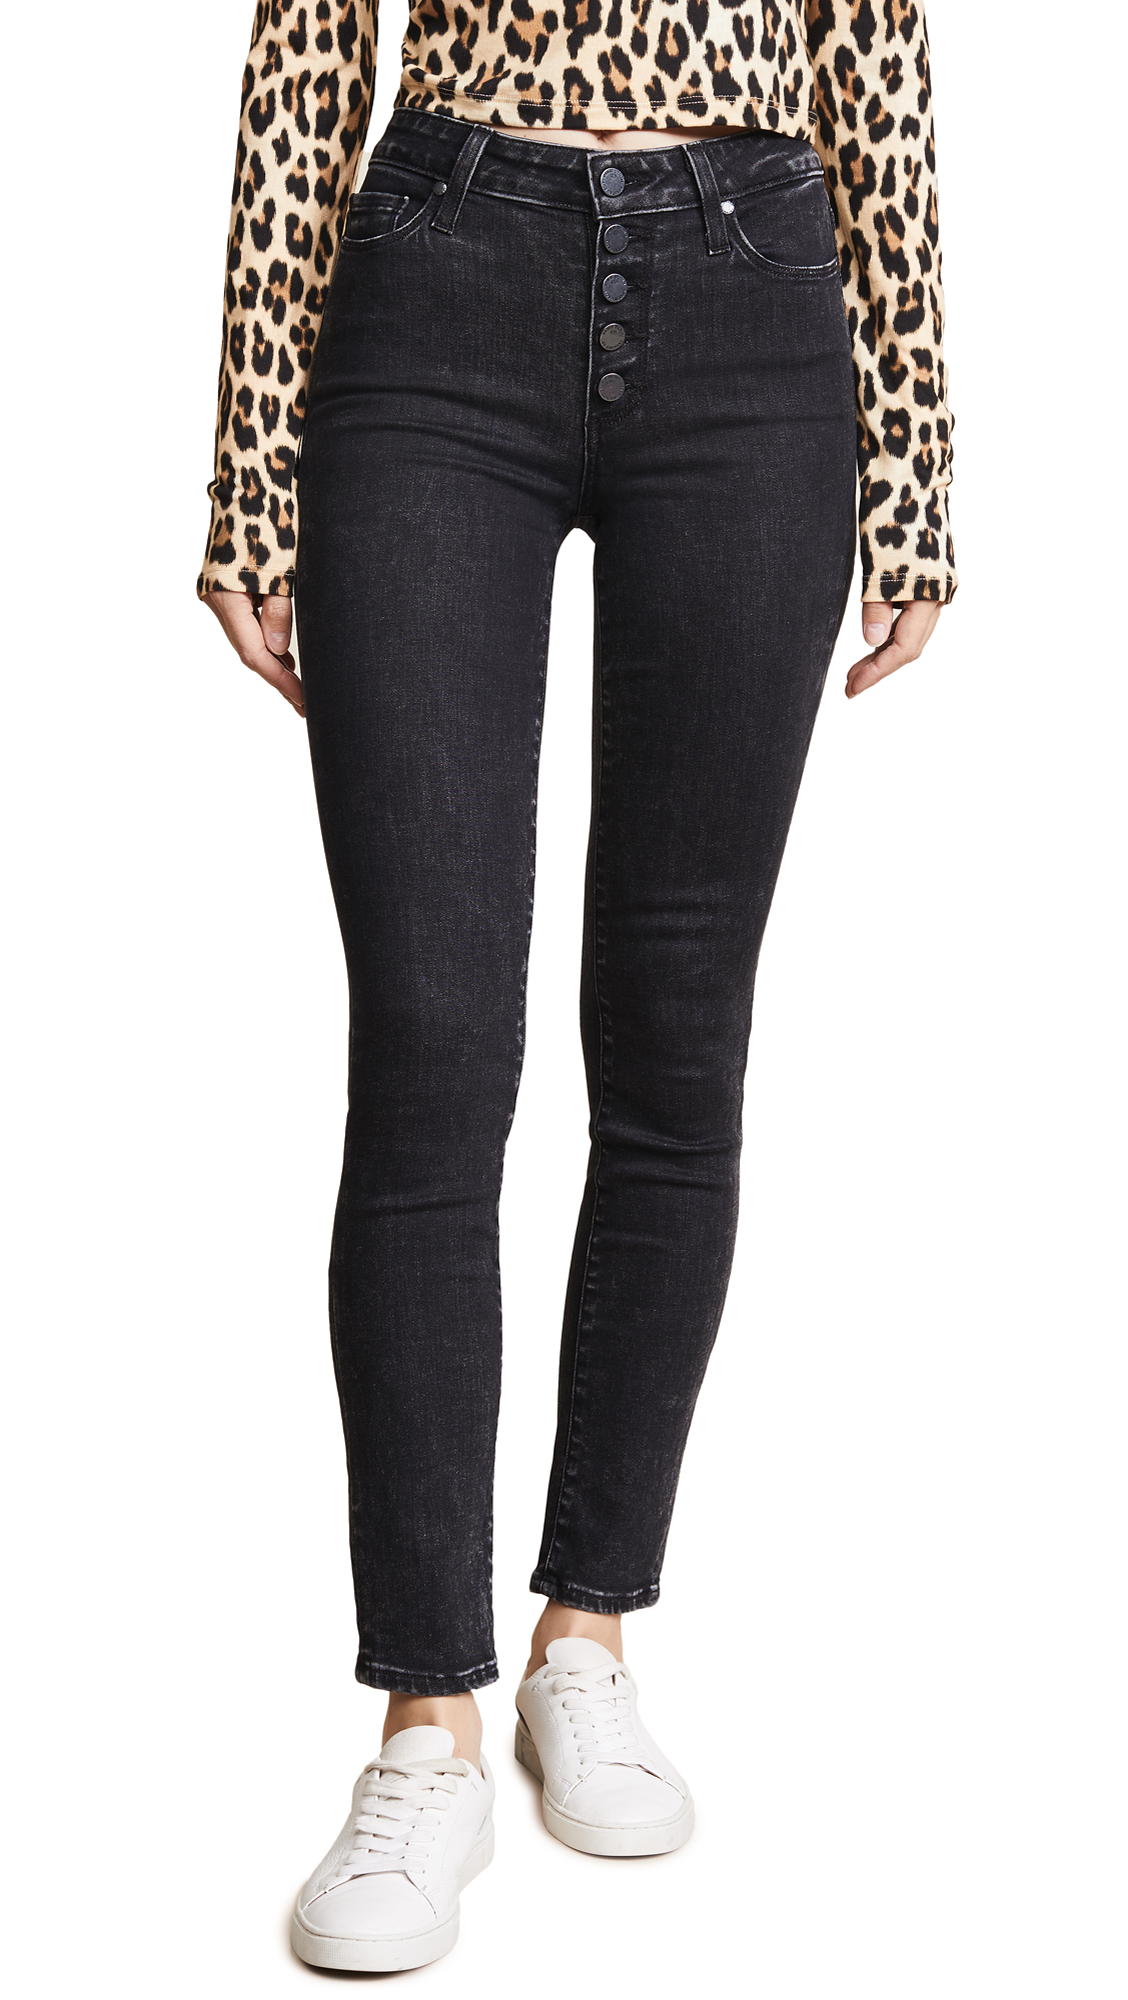 PAIGE HOXTON ANKLE PEG EXPOSED BUTTON FLY JEANS